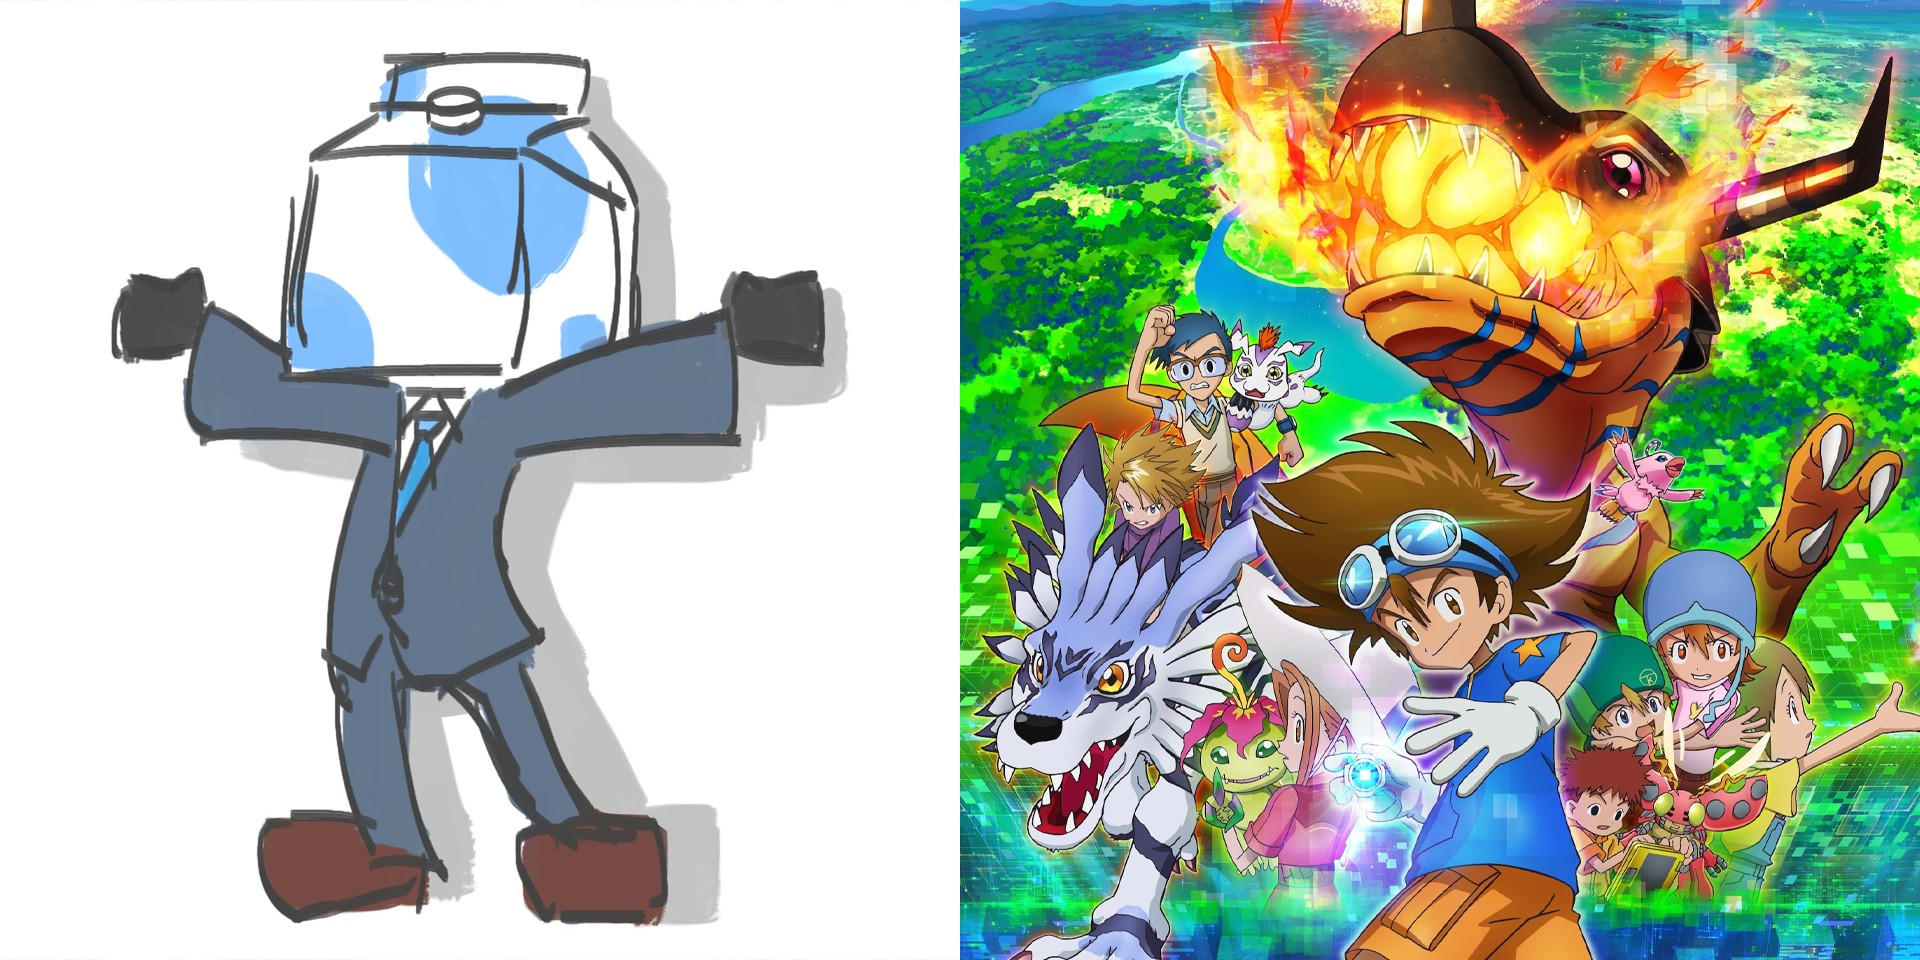 Wolpis Carter releases new Digimon Adventure closing theme song and Overseas Highway EP – listen